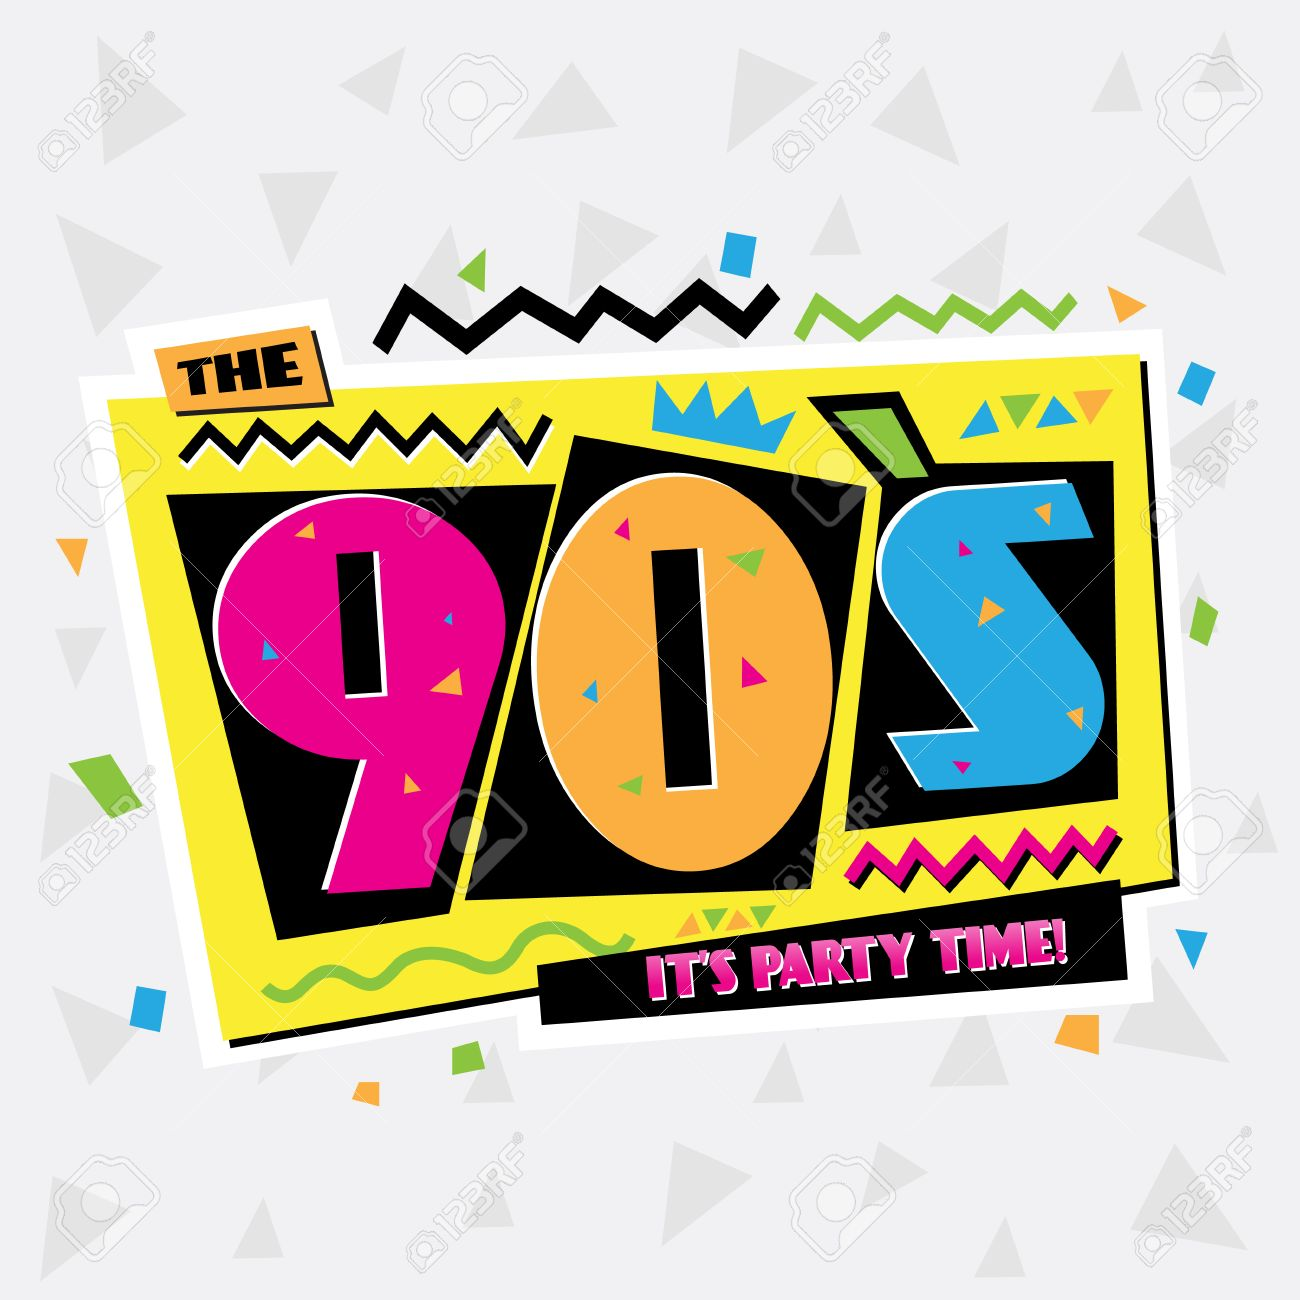 Its Party Time Clipart.